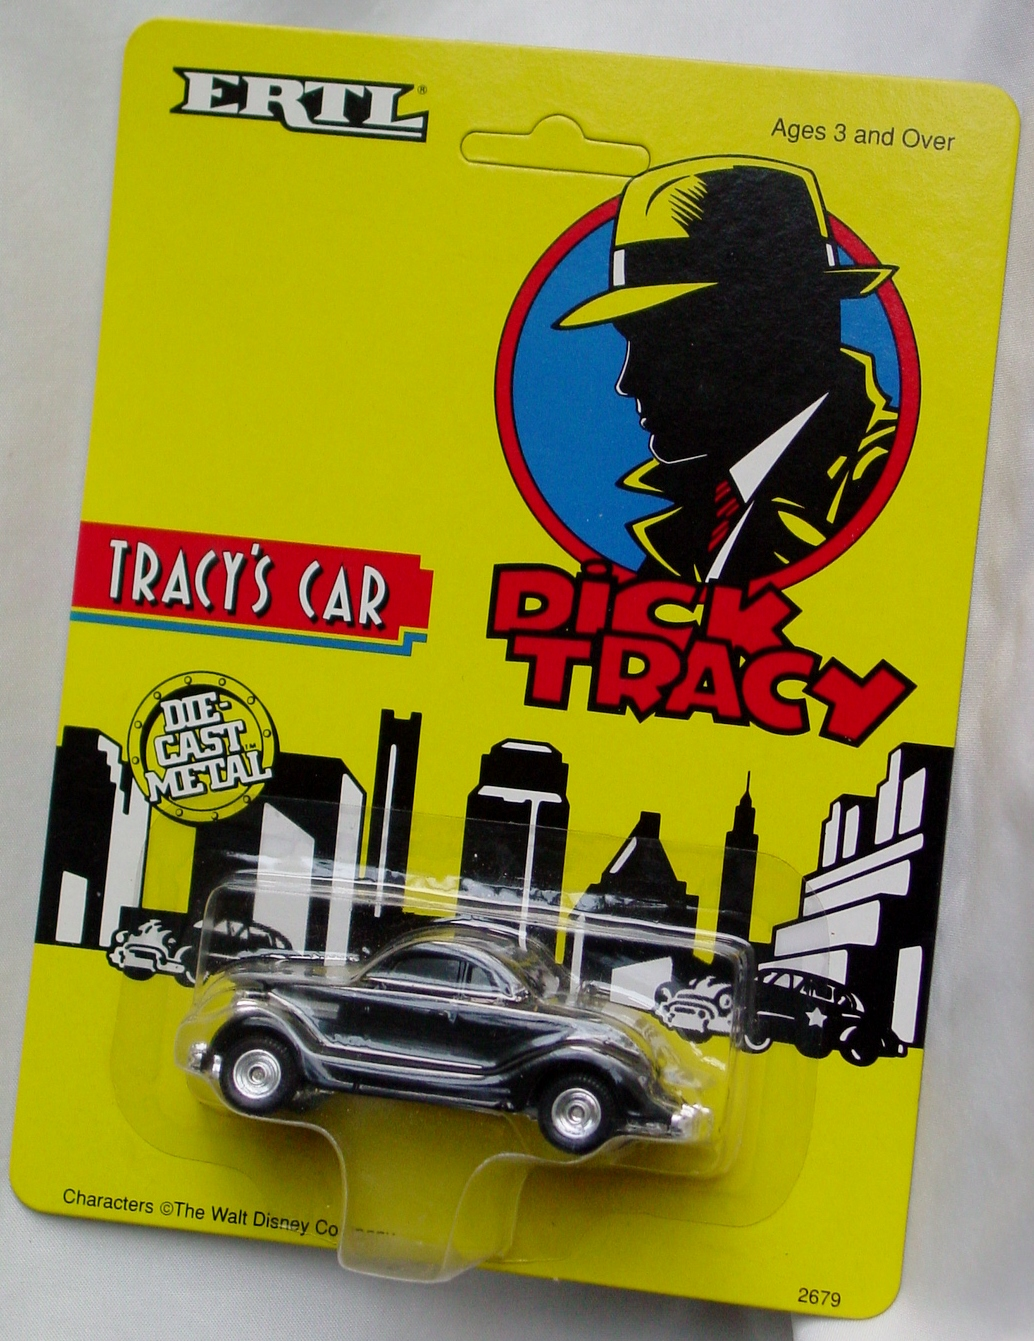 64 - ERTL DICK TRACY Tracys Car